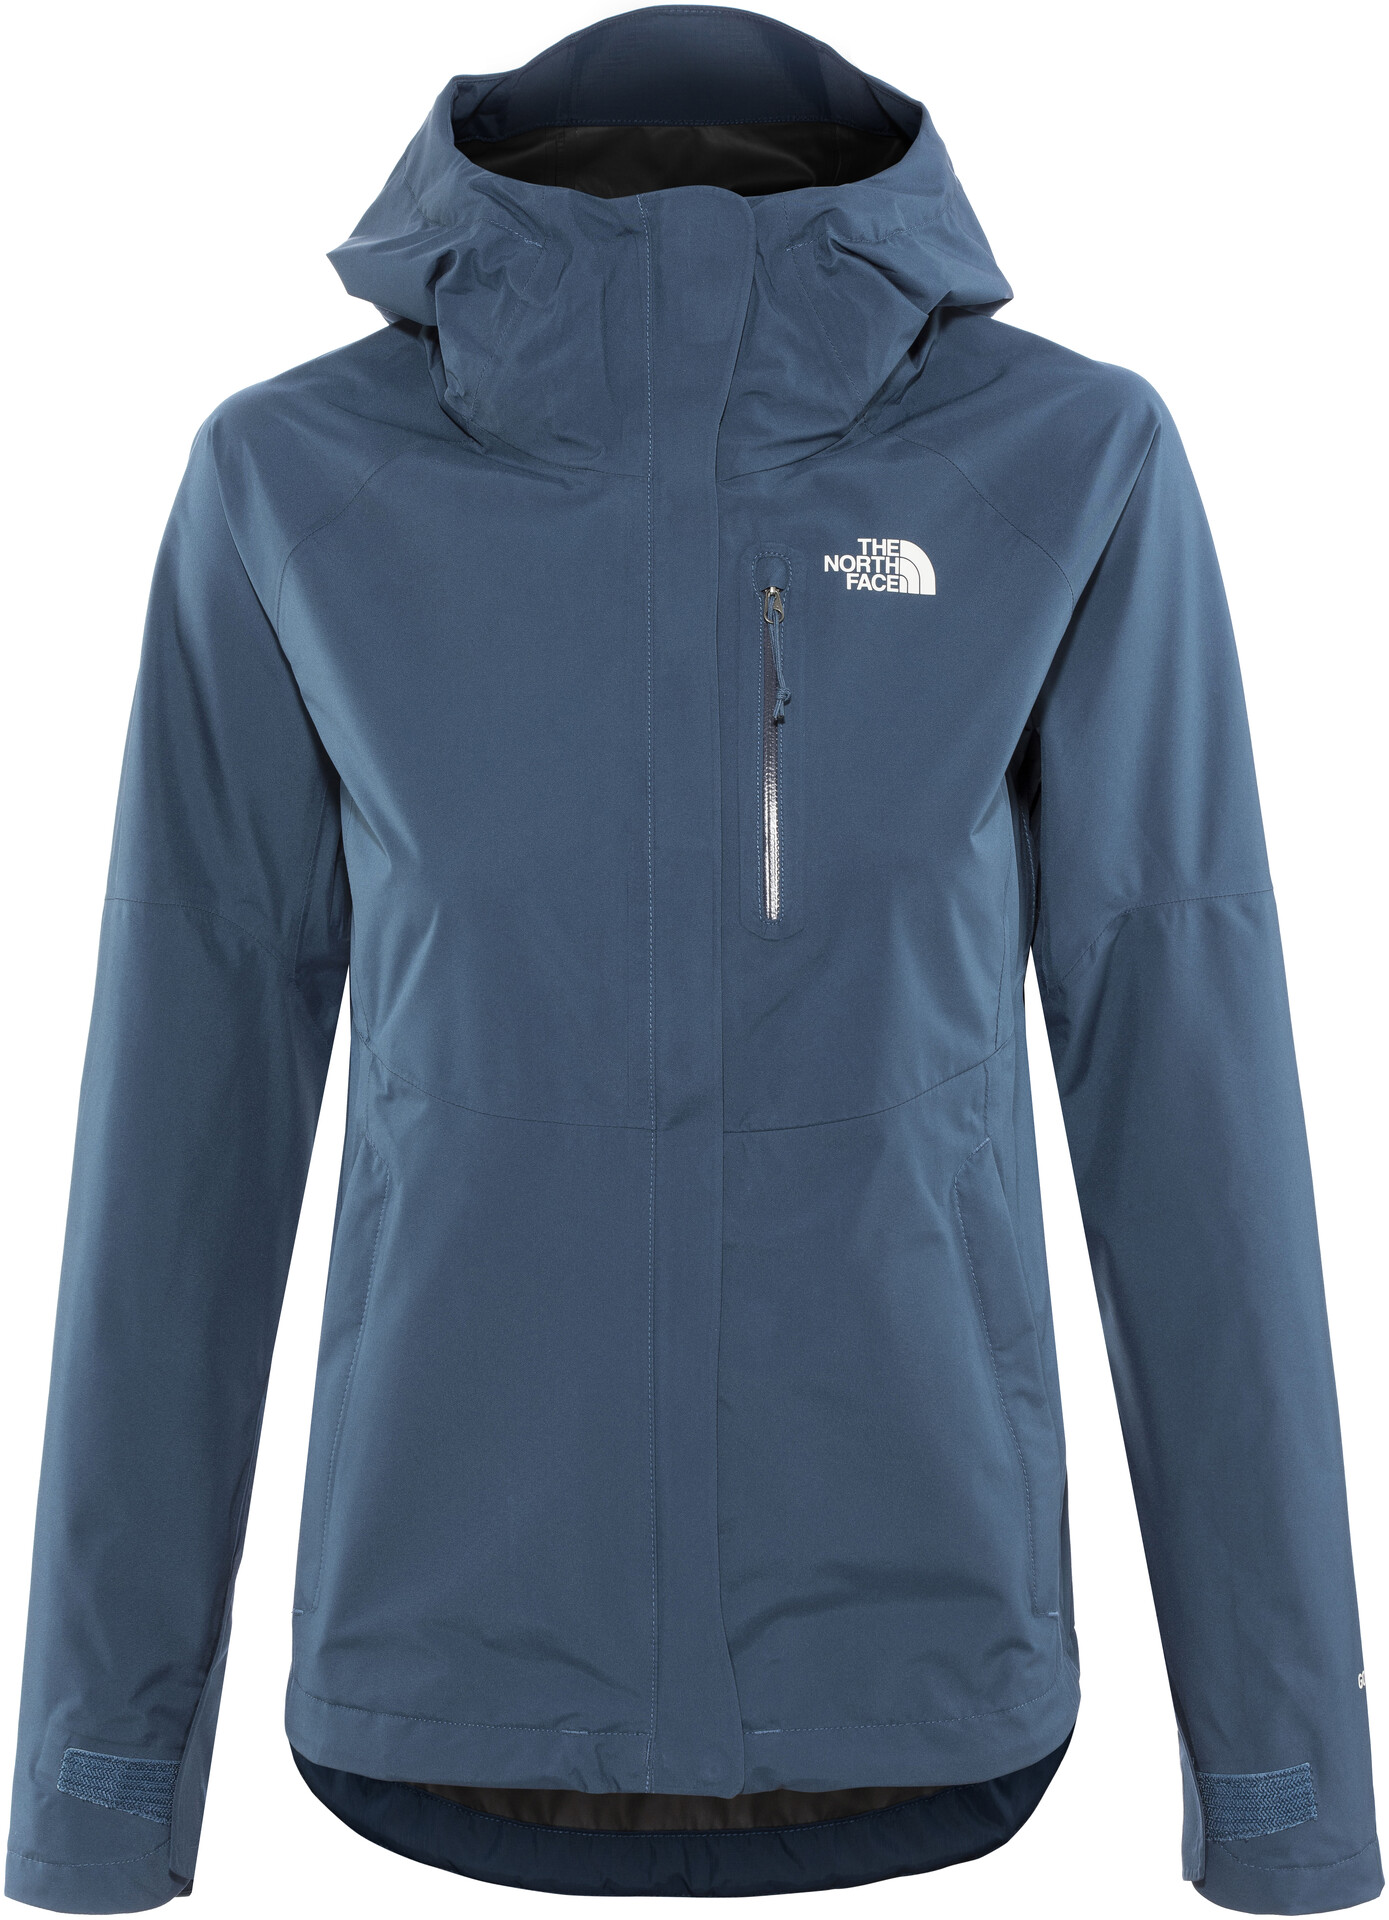 Jacket Wing Dryzzle Blue North Face Teal The Damen fgYvb67y